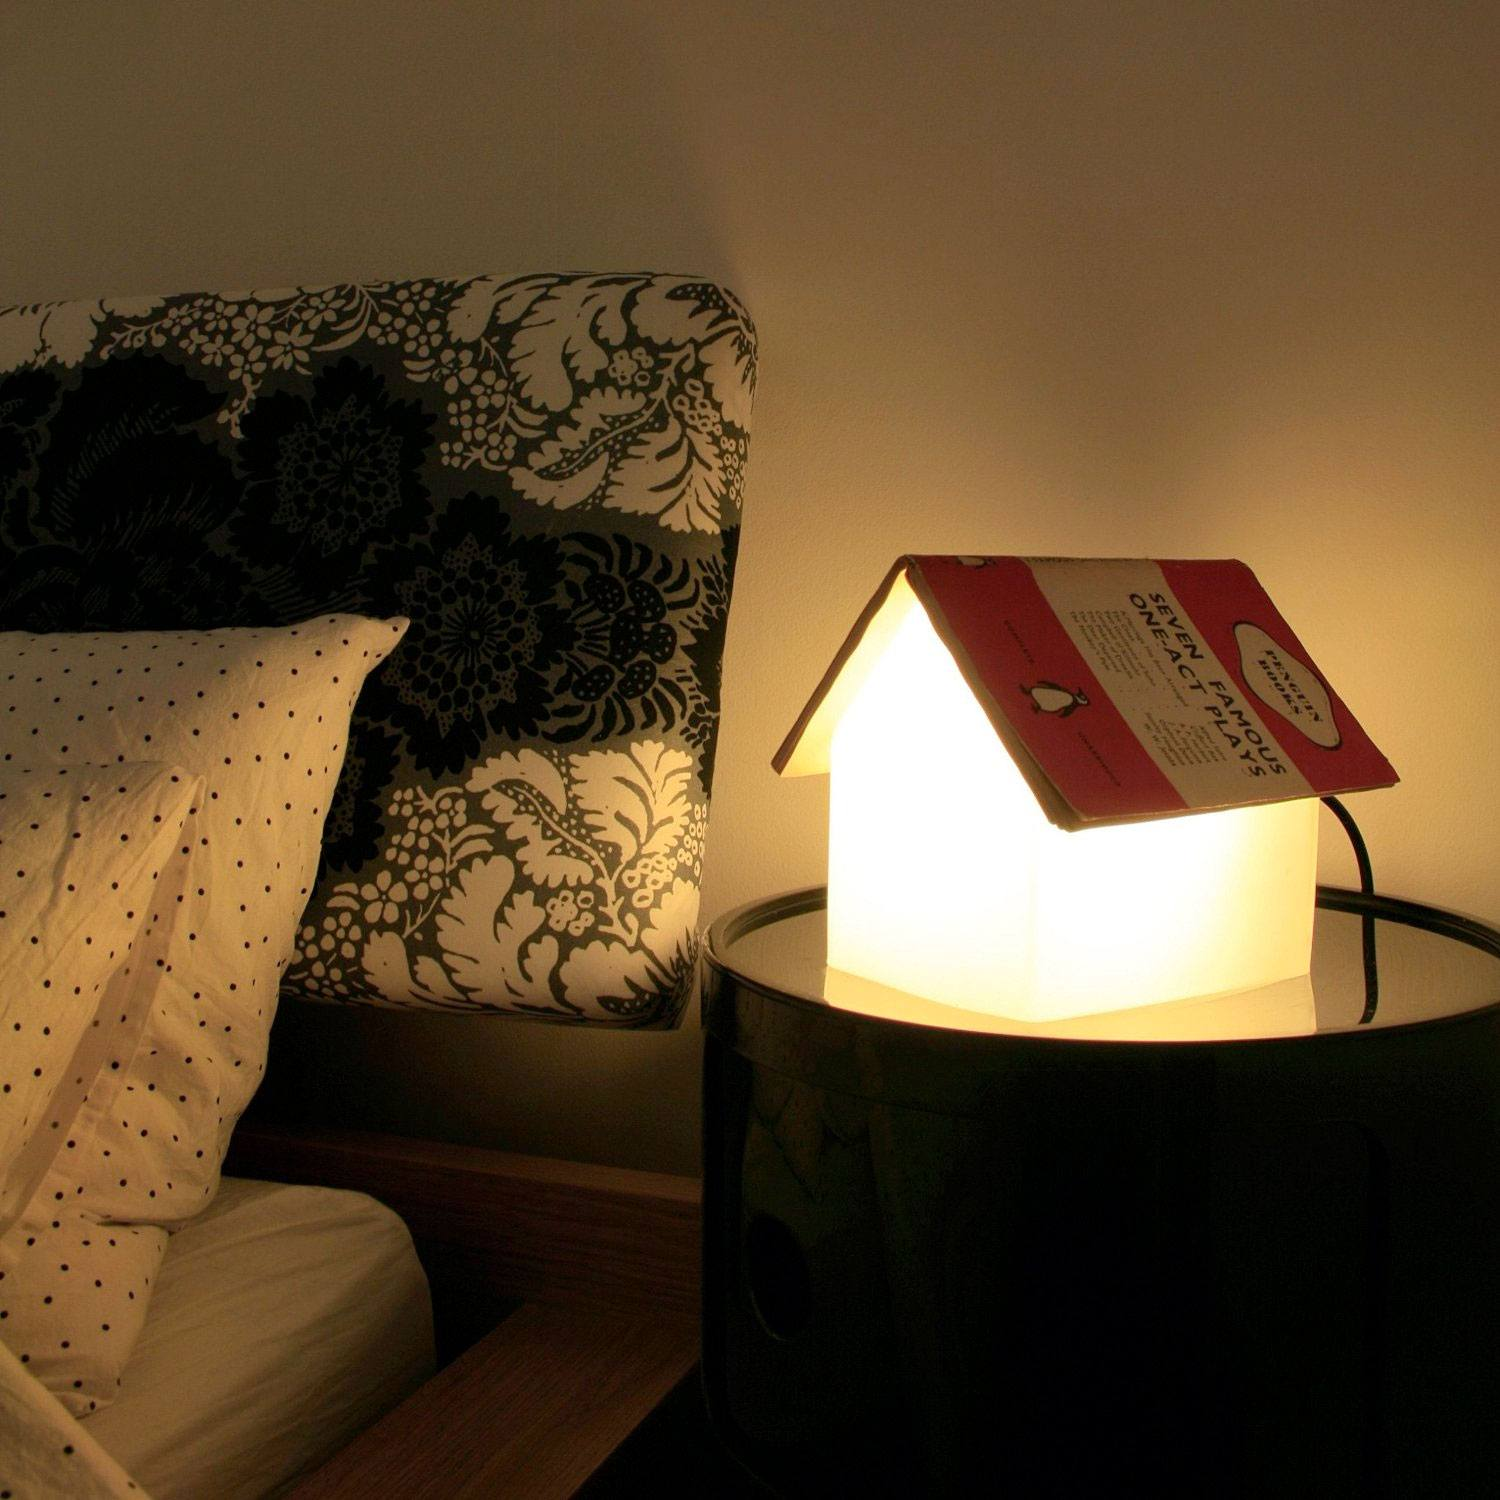 Night Lamps at the Bedroom: Necessary Lighting Fixtures. Mini-house